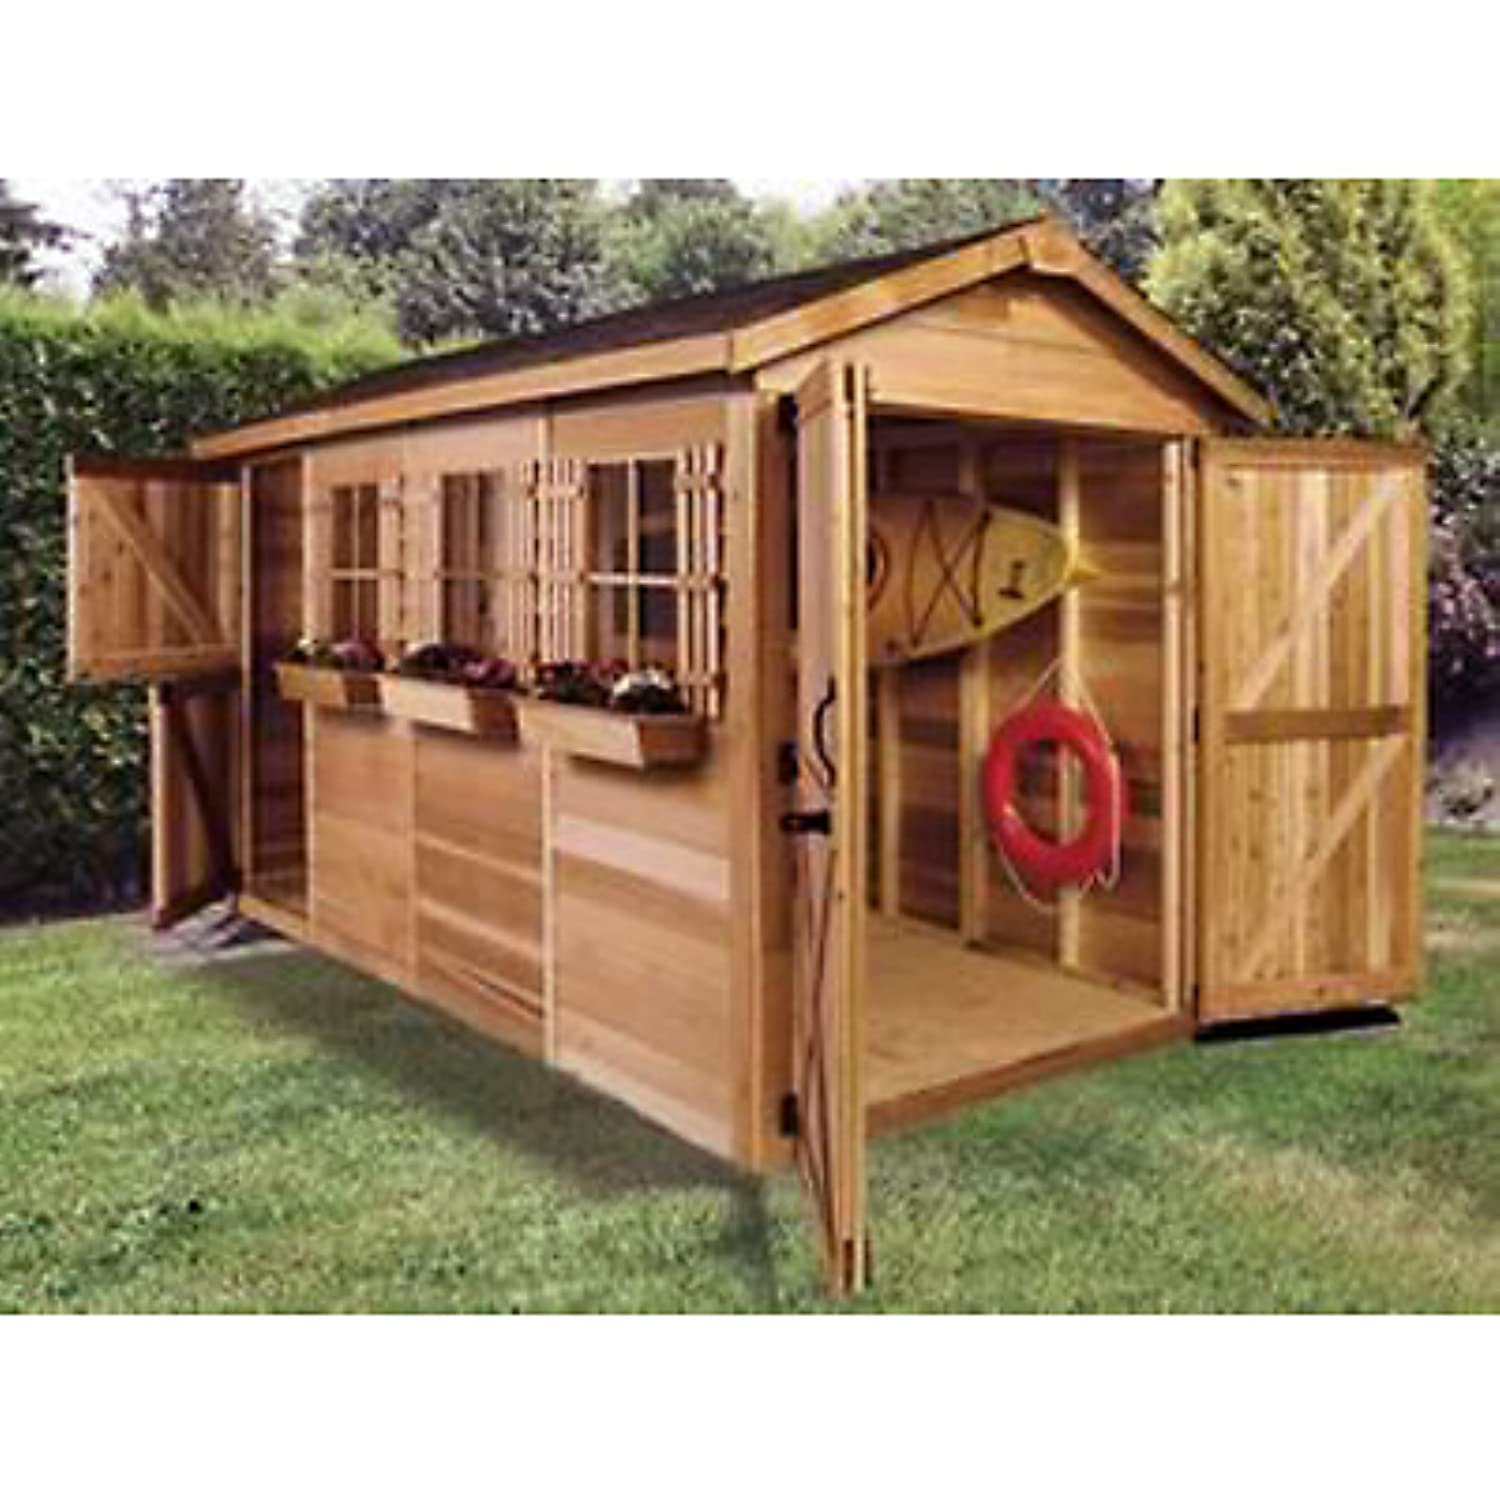 amazon com cedar shed x ft boathouse garden shed home - Garden Sheds 7x6